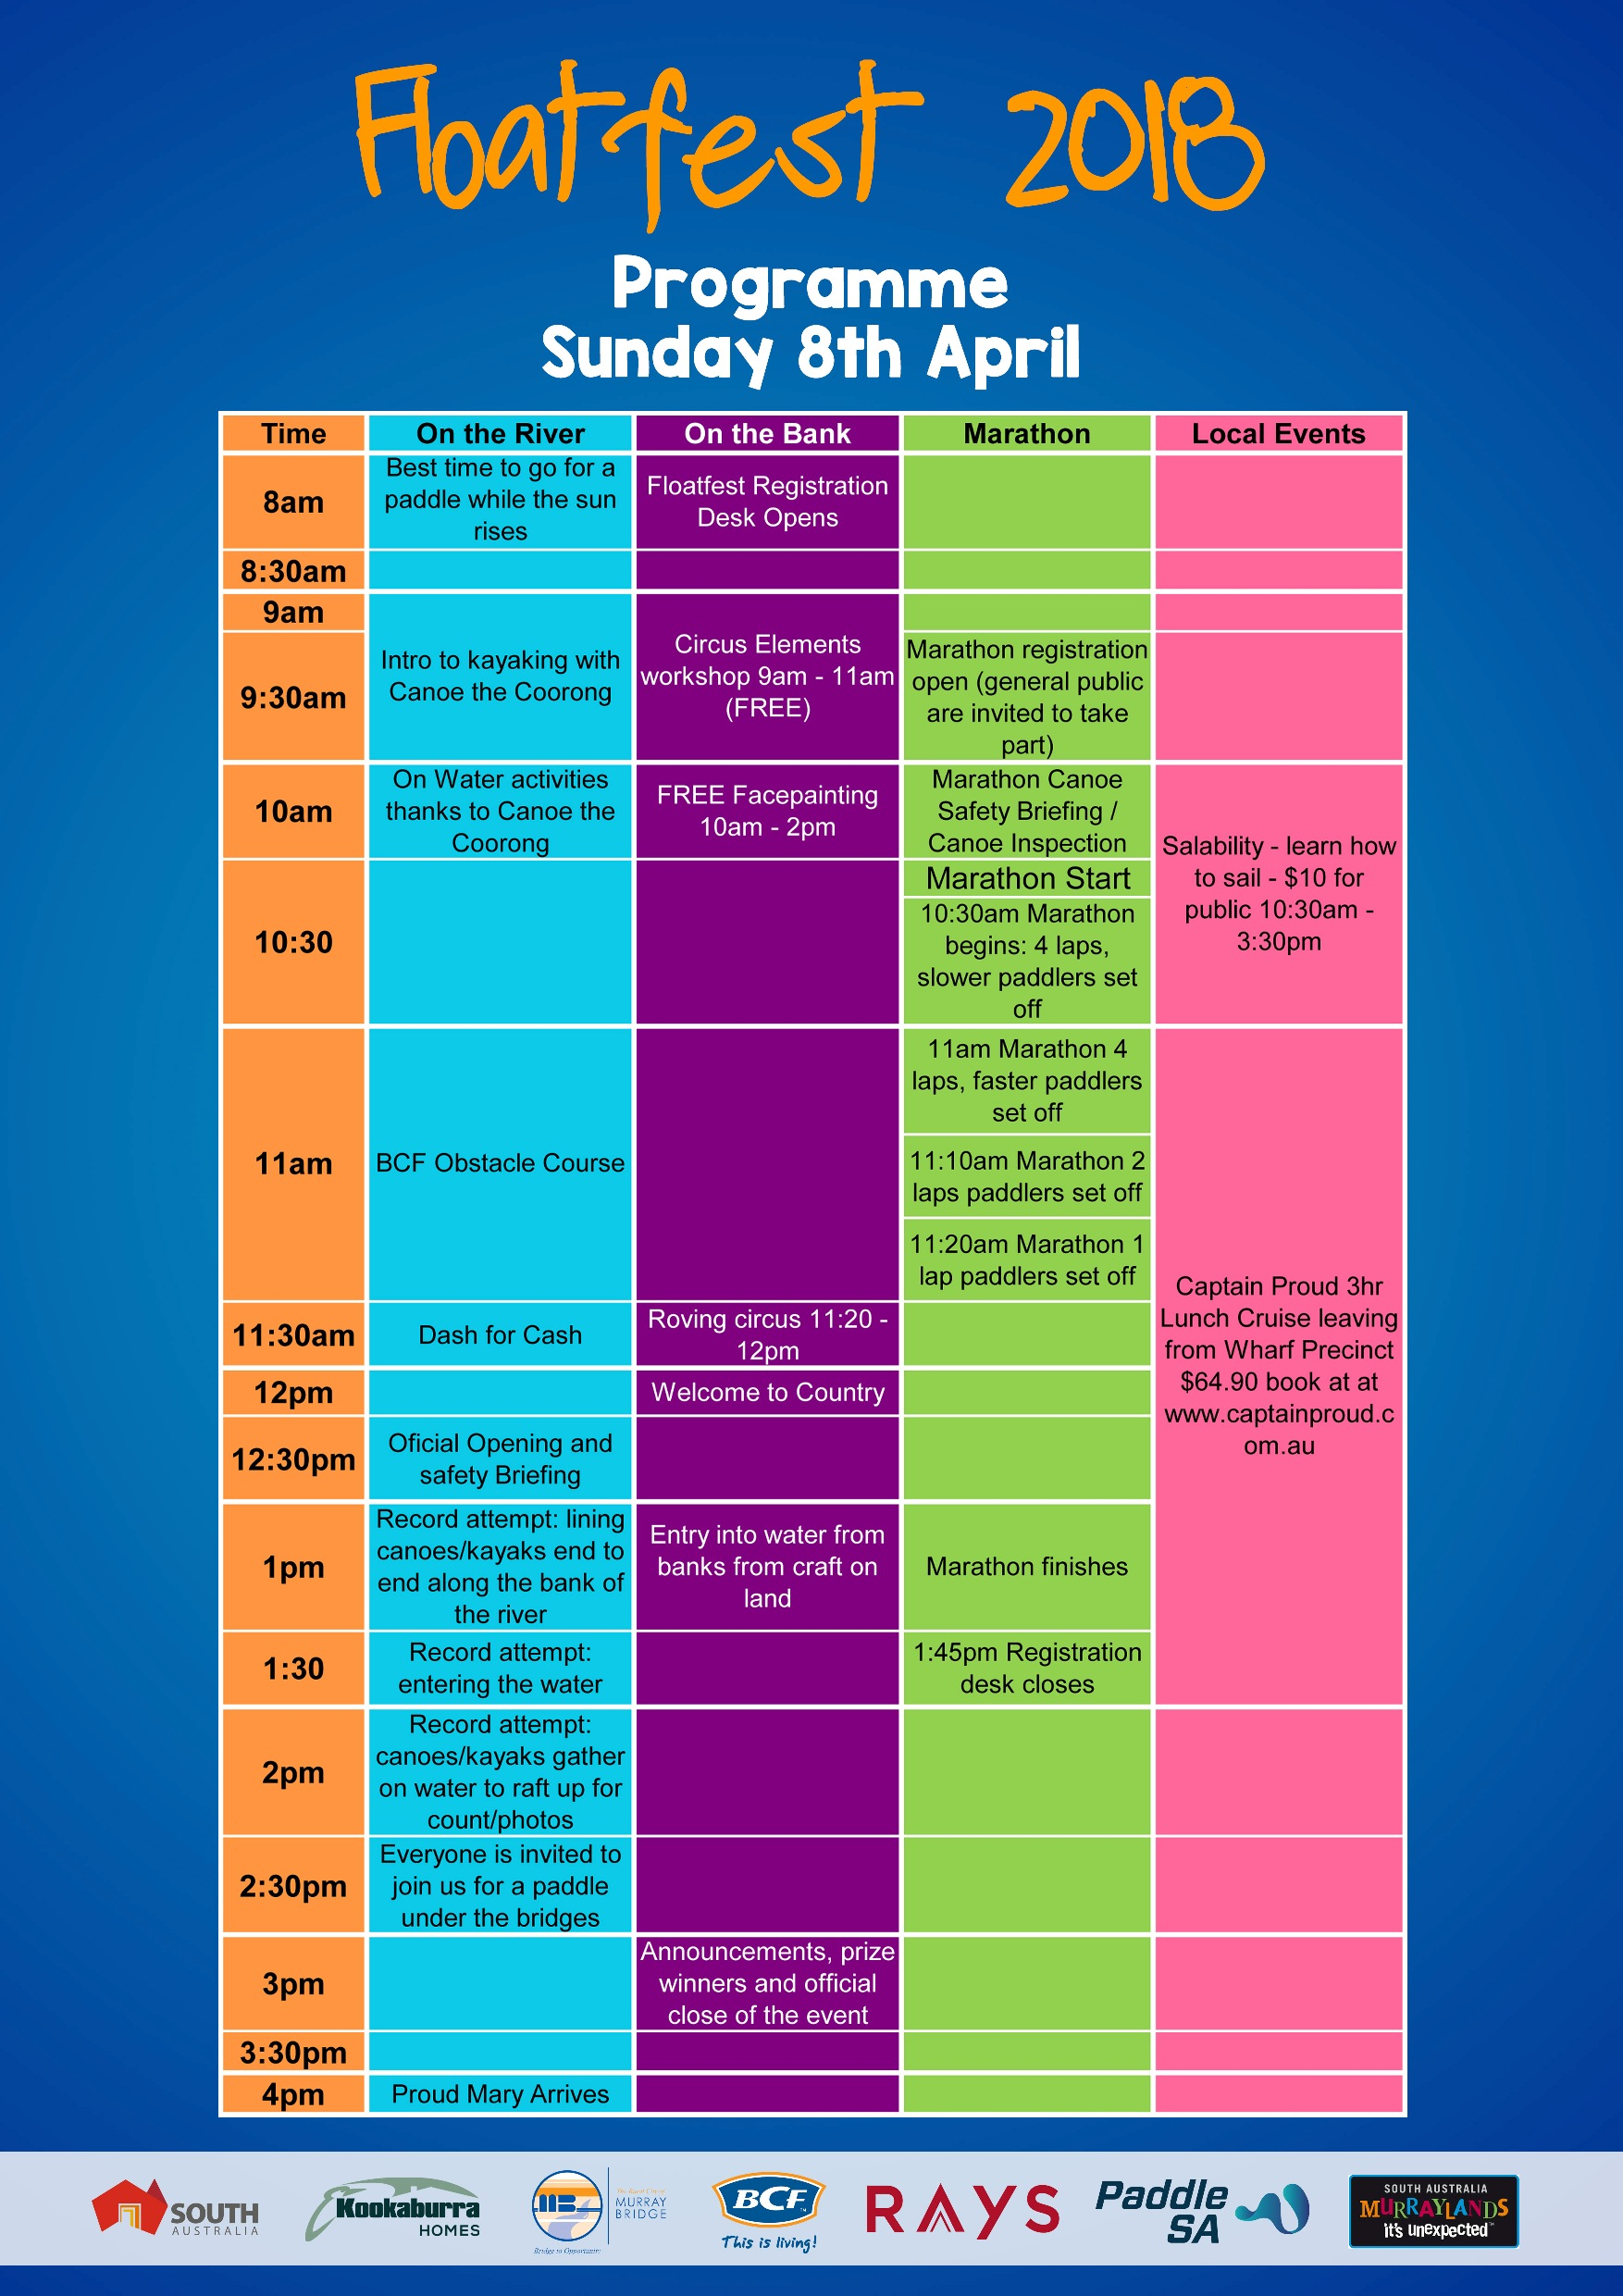 Floatfest 2018 Sunday Programme